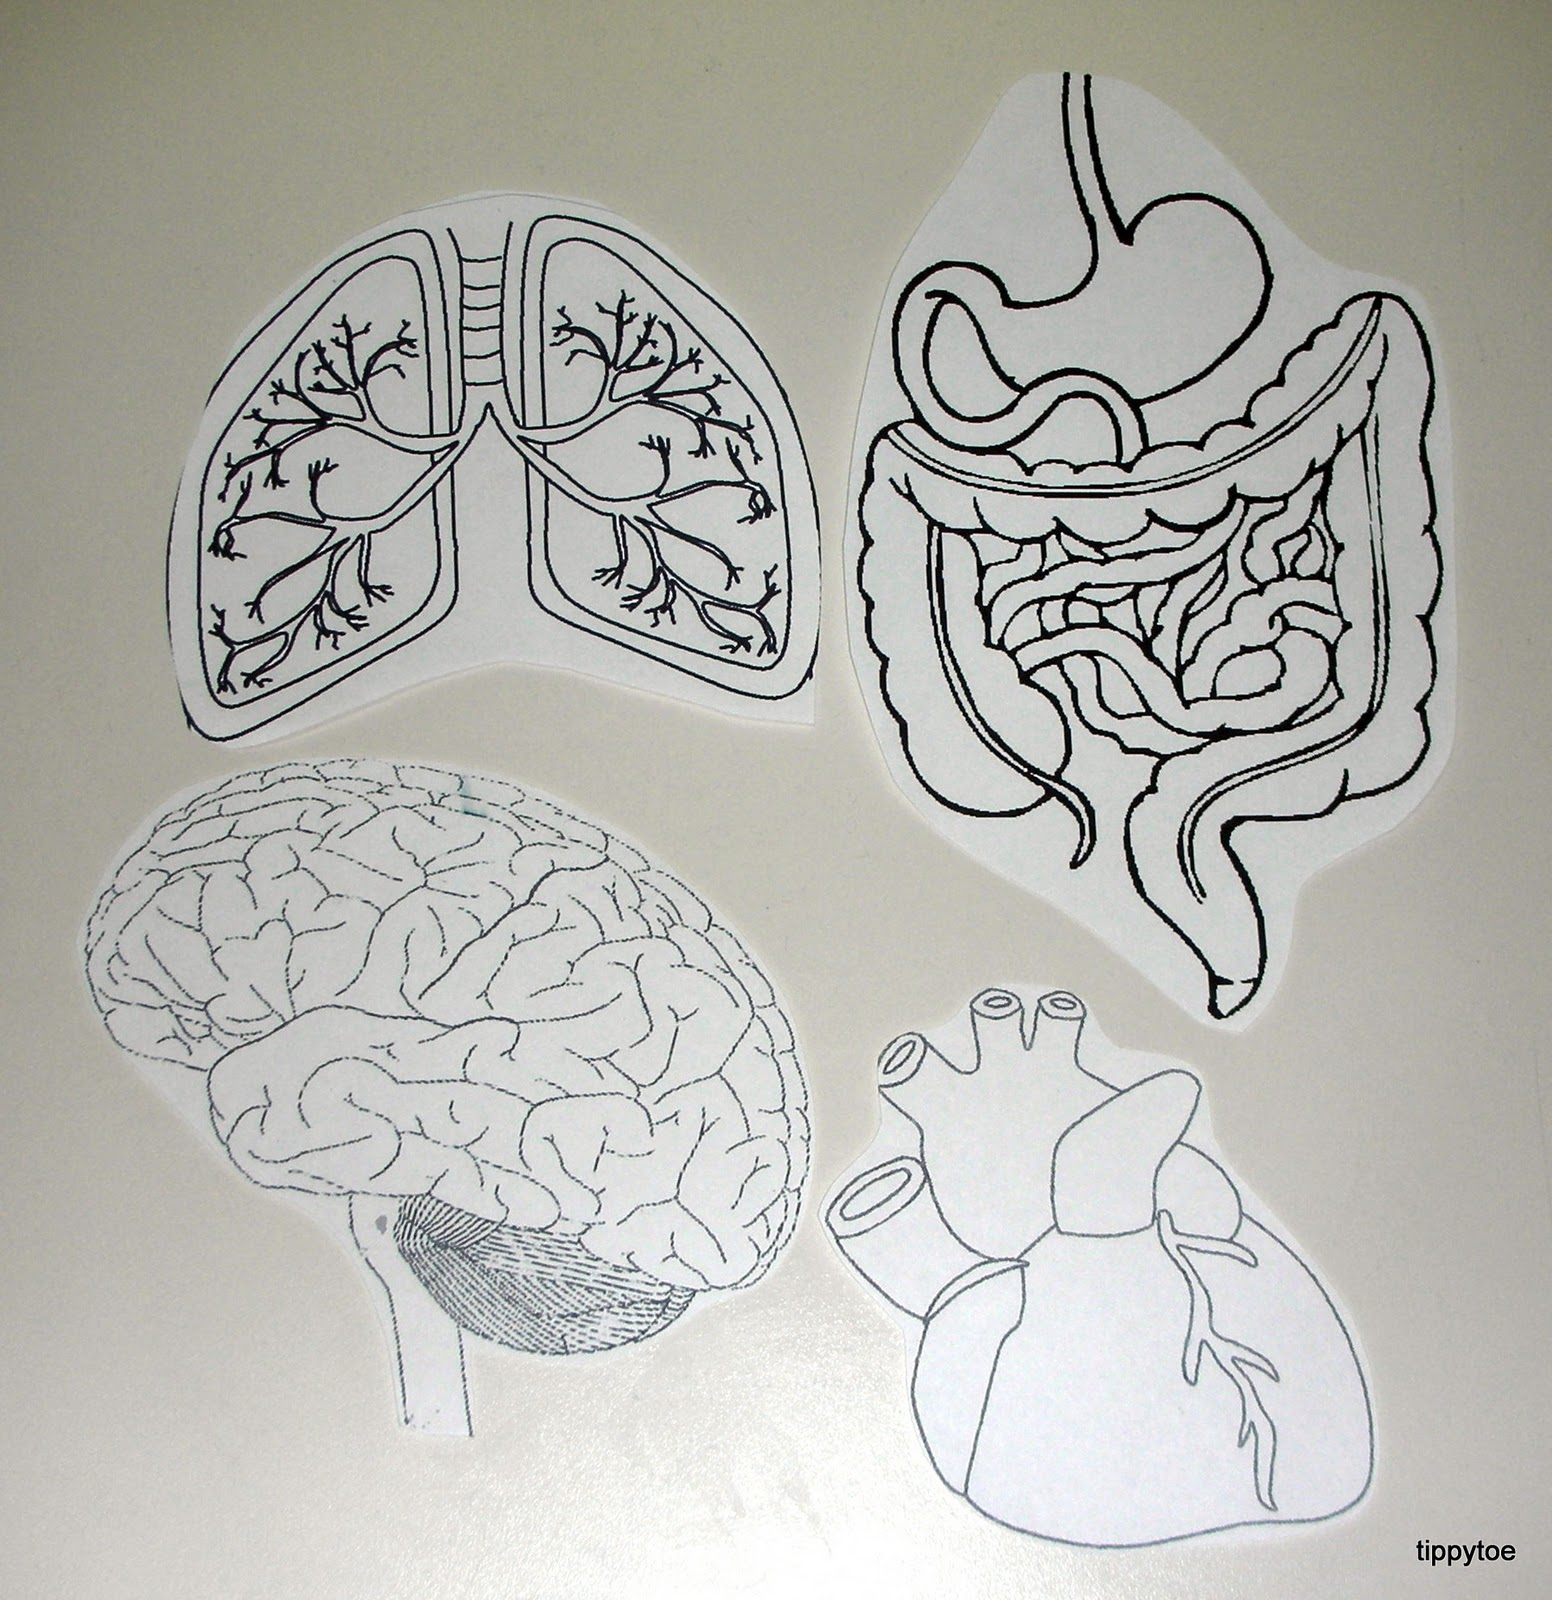 Human Organs Coloring Pages For Kids